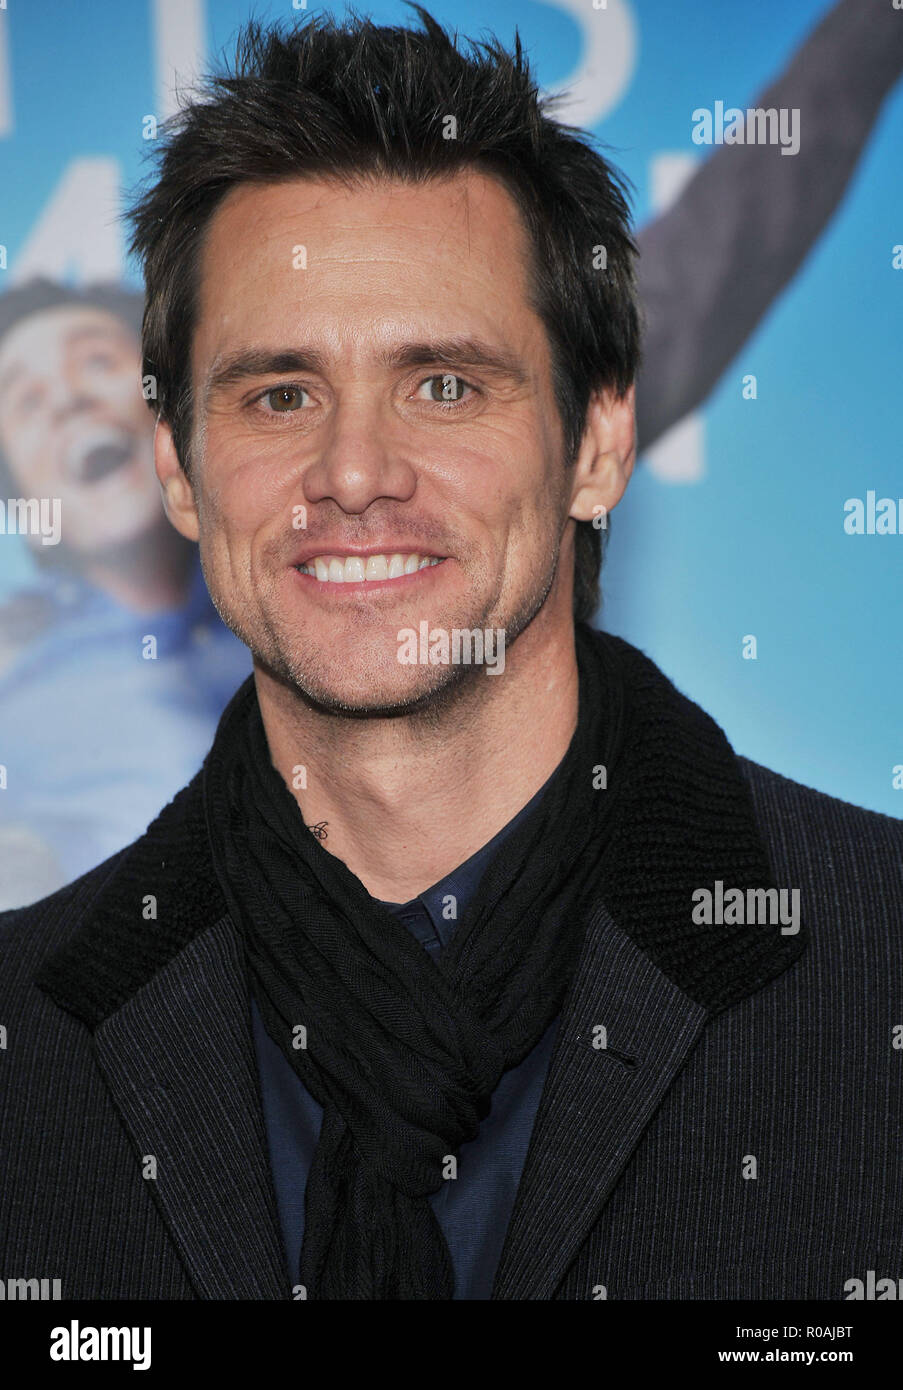 Jim Carrey Yes Man Premiere At The Westwood Village Theatre In Los Angeles Carreyjim 49 Red Carpet Event Vertical Usa Film Industry Celebrities Photography Bestof Arts Culture And Entertainment Topix Celebrities Fashion